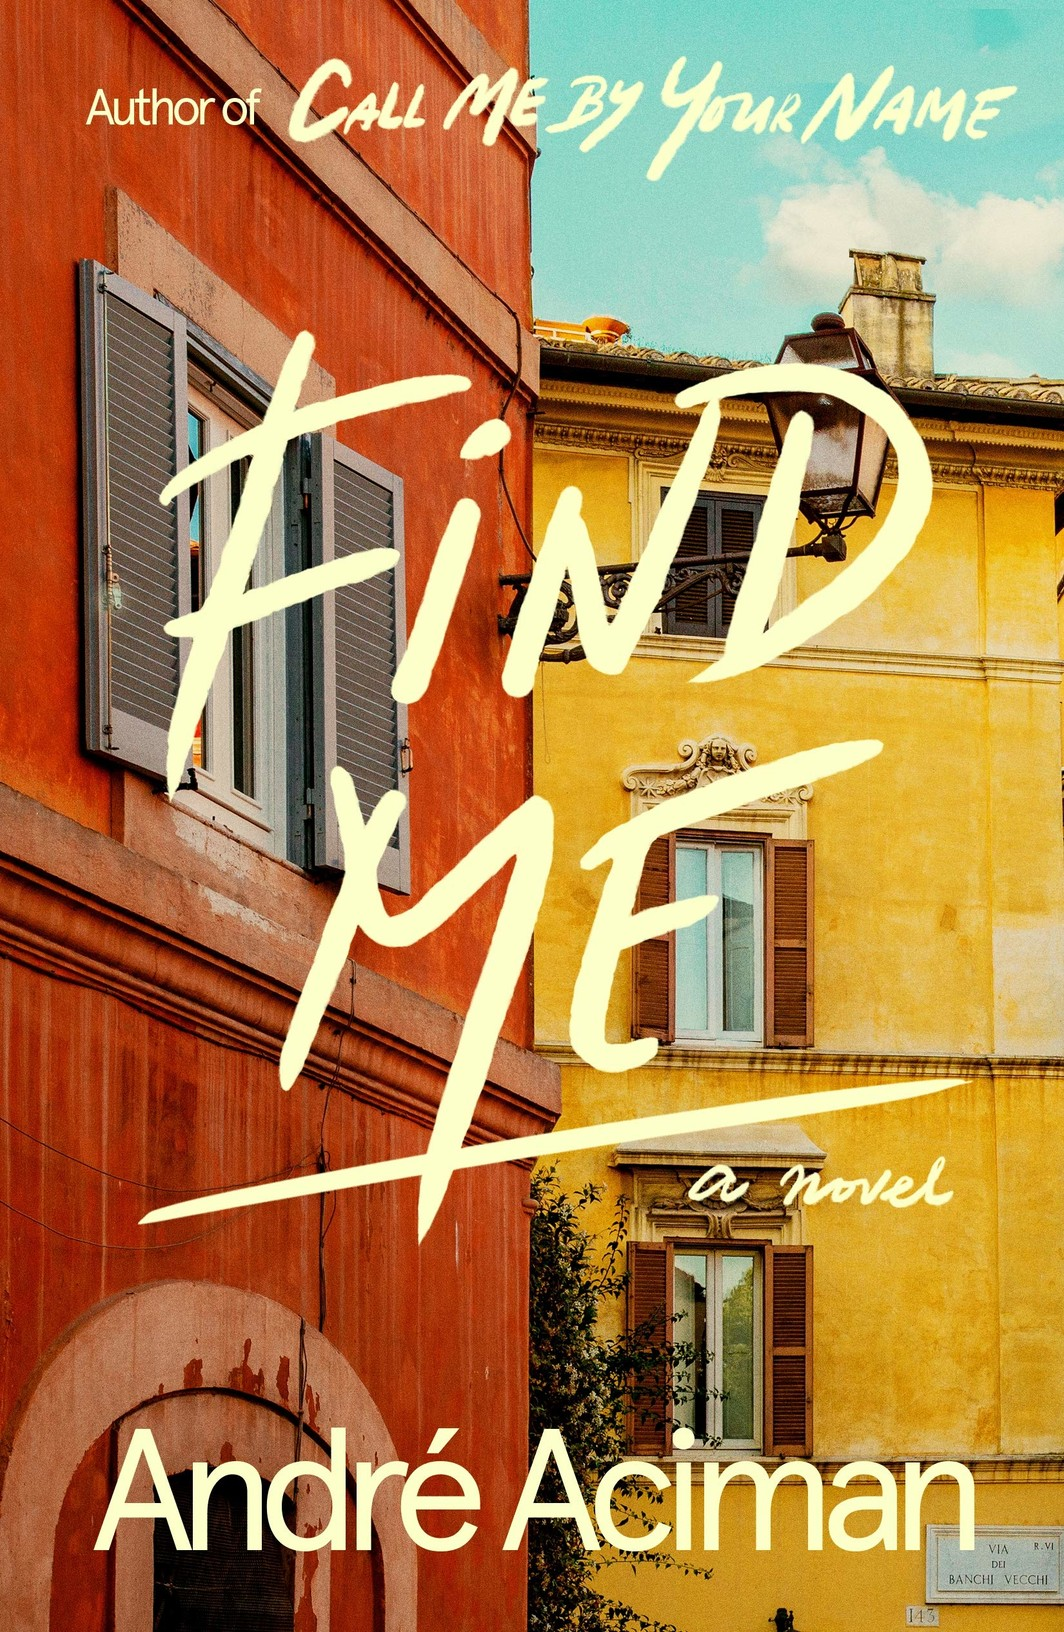 The cover of Find Me